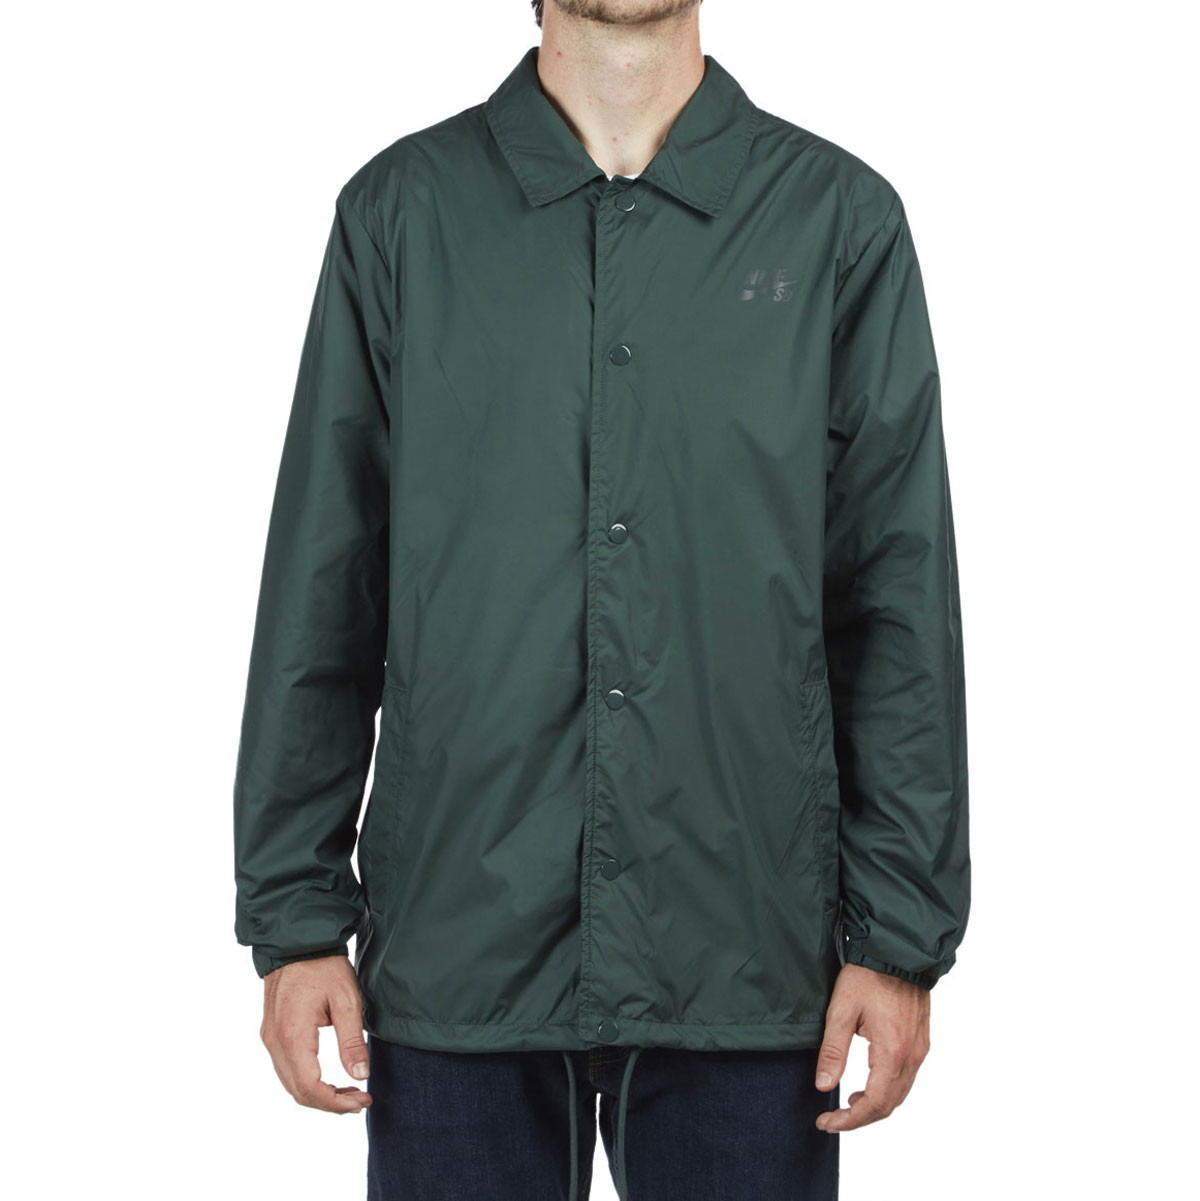 Nike SB Shield Green Coaches Jacket